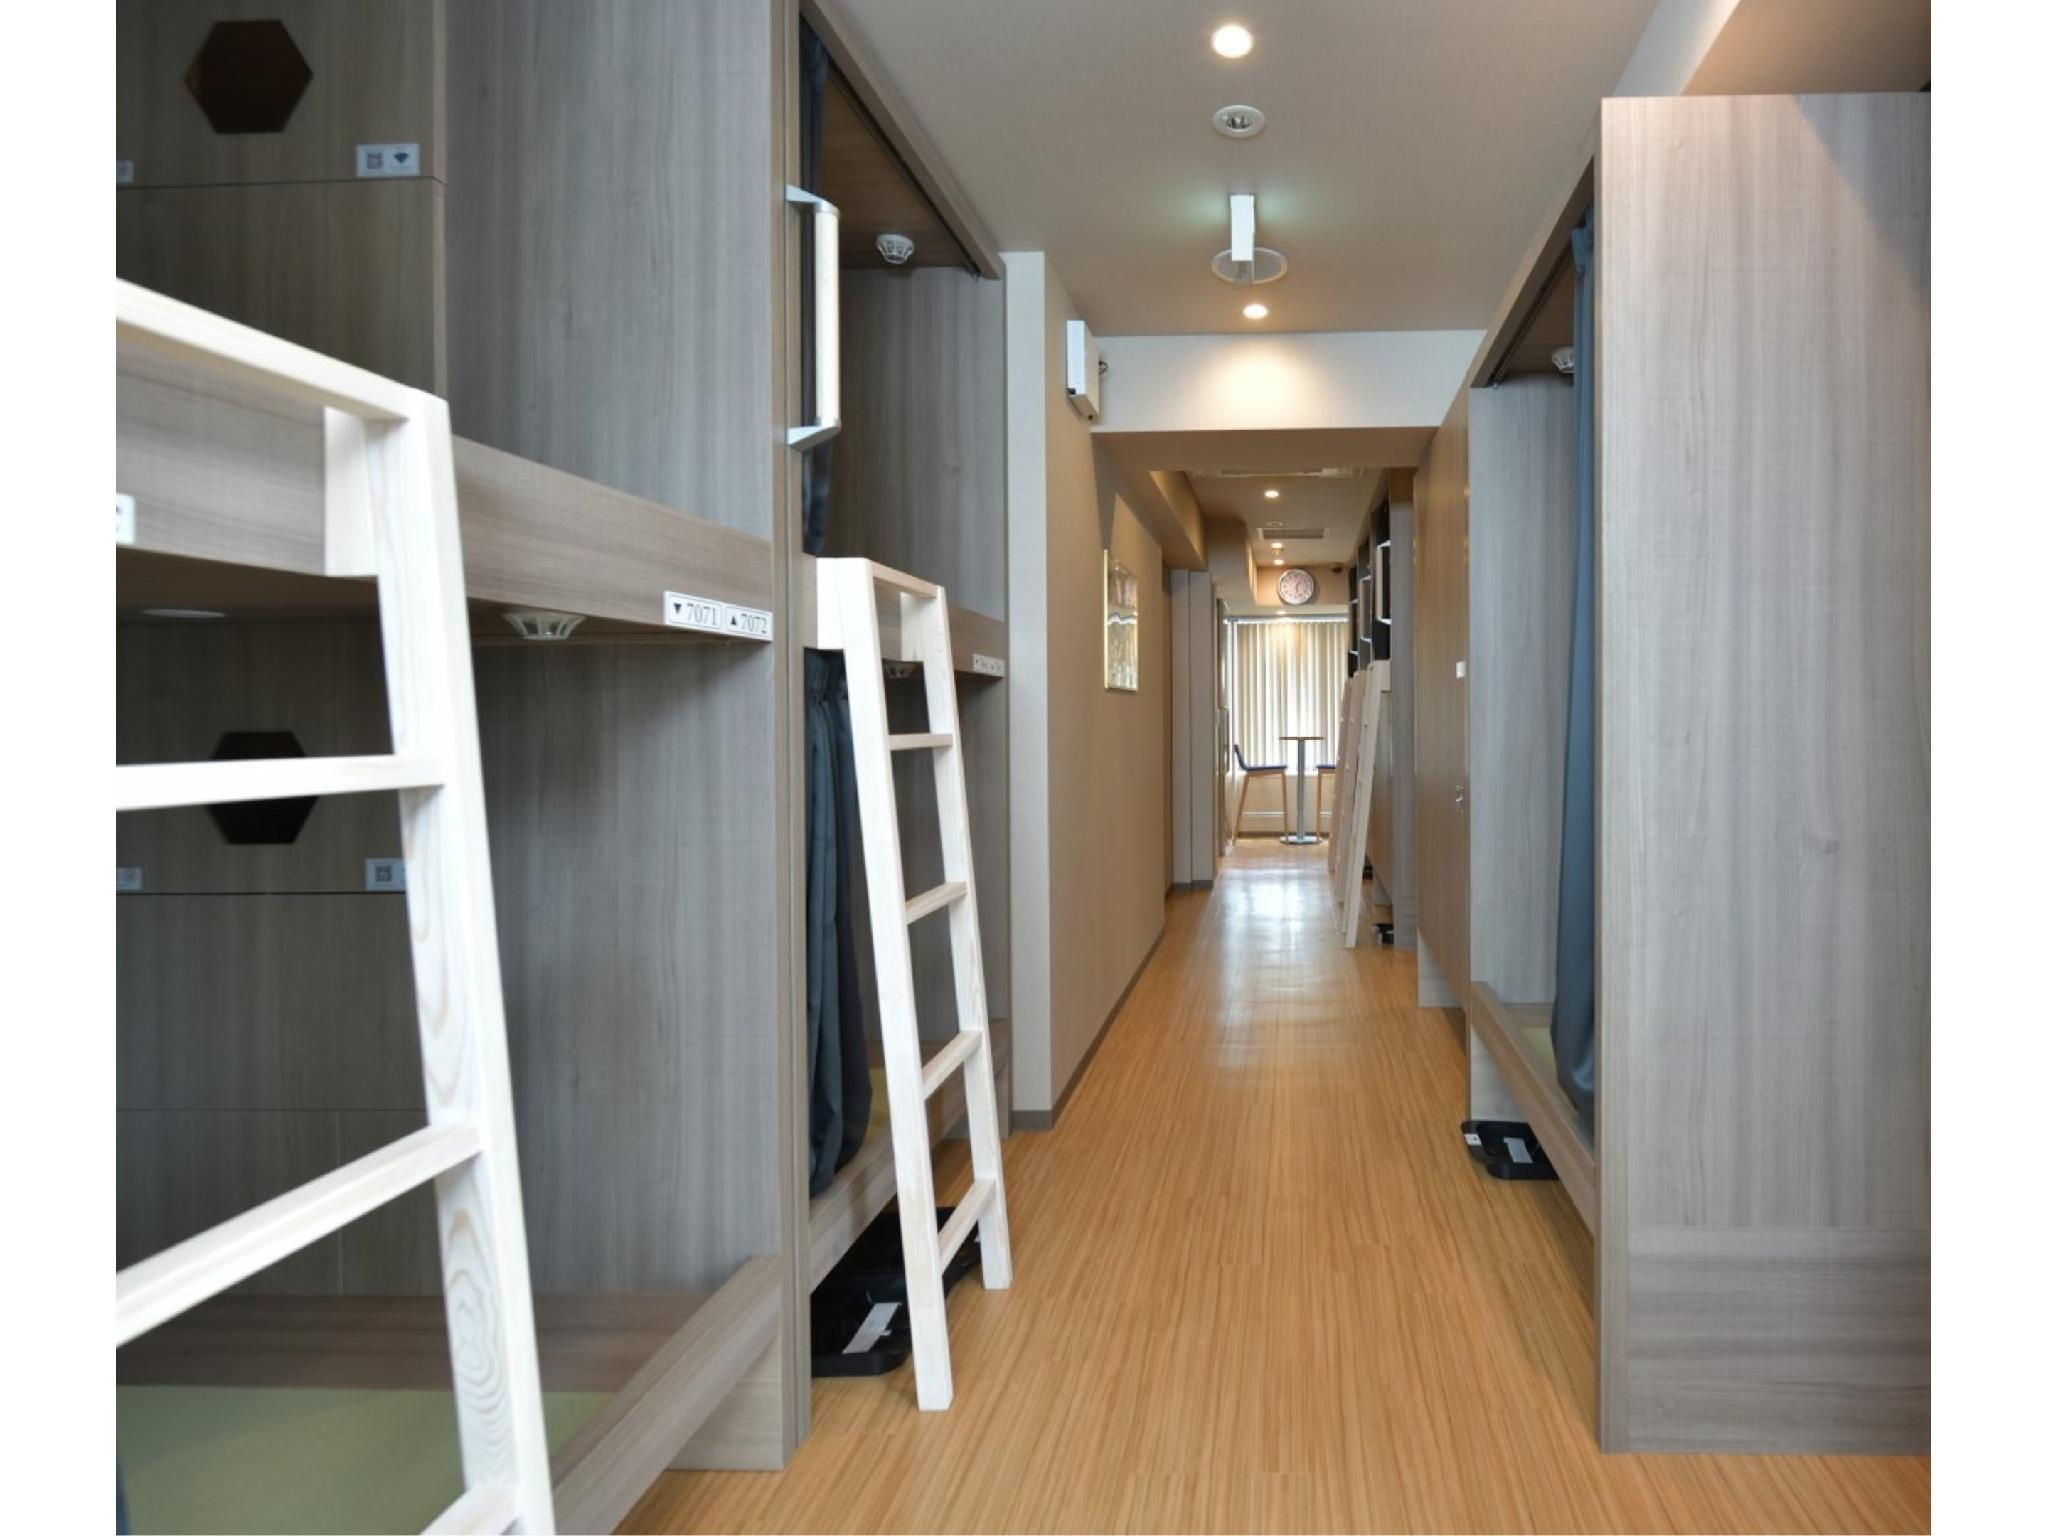 Mixed Dormitory Room (1 of 22 Beds)